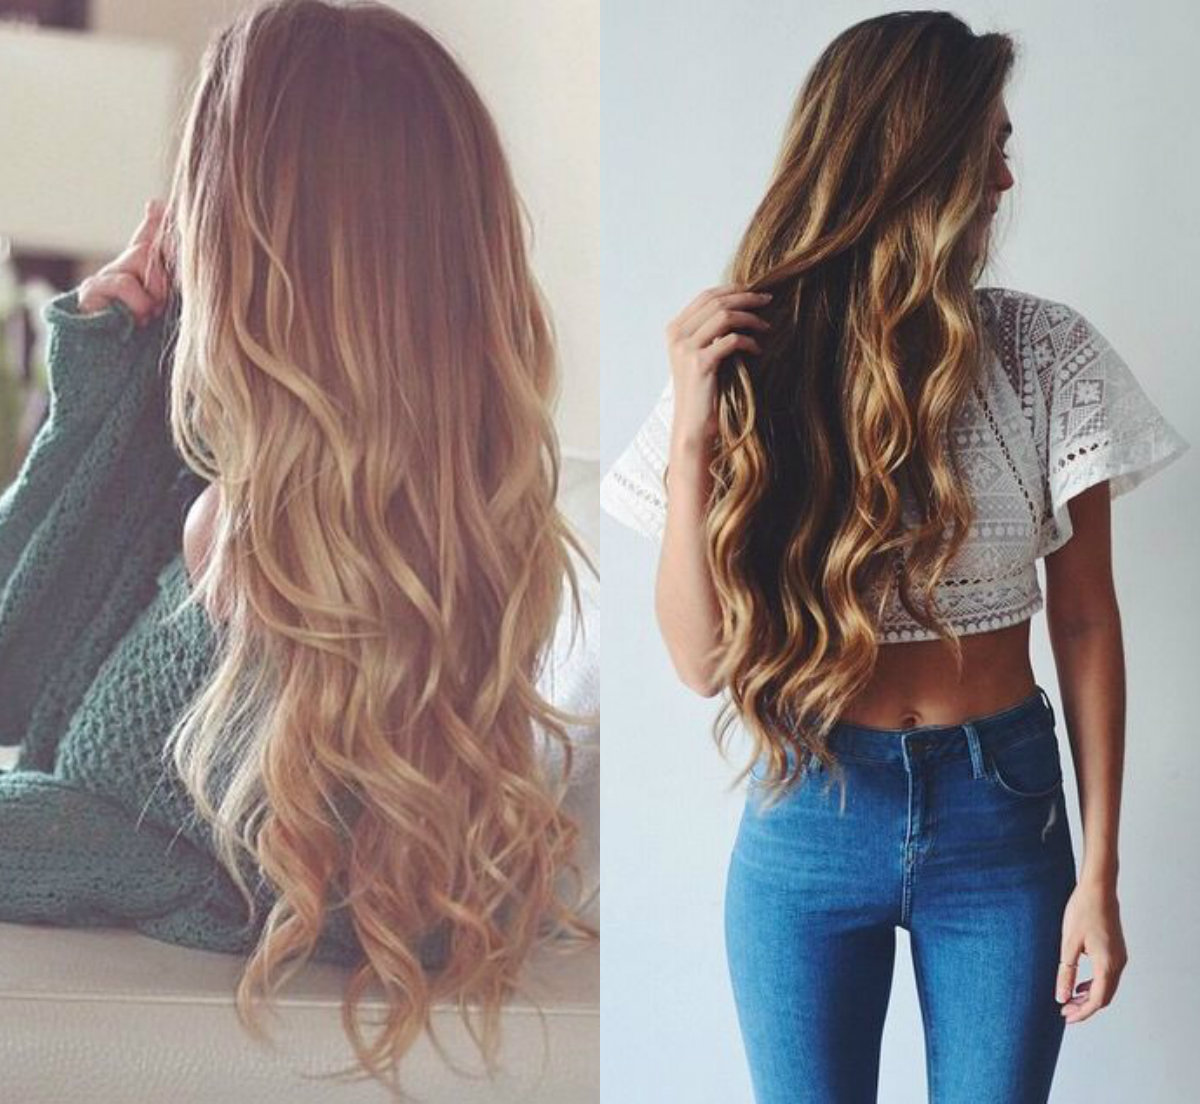 Long Wavy Hairstyles For Any Occasion | Hairdrome.com